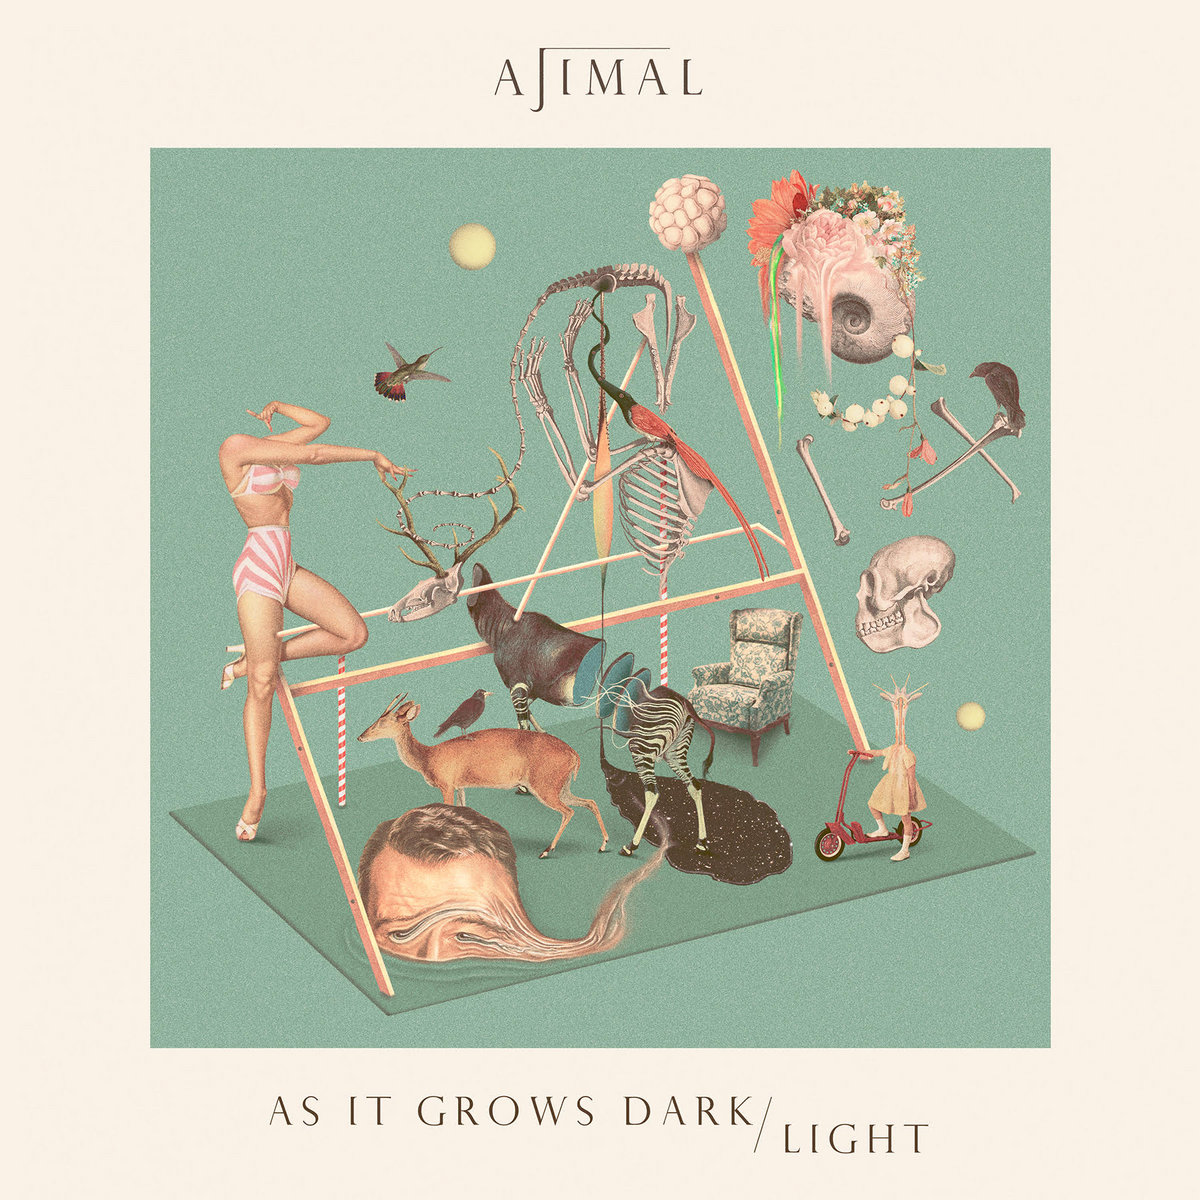 As It Grows Dark / Light - AJIMAL